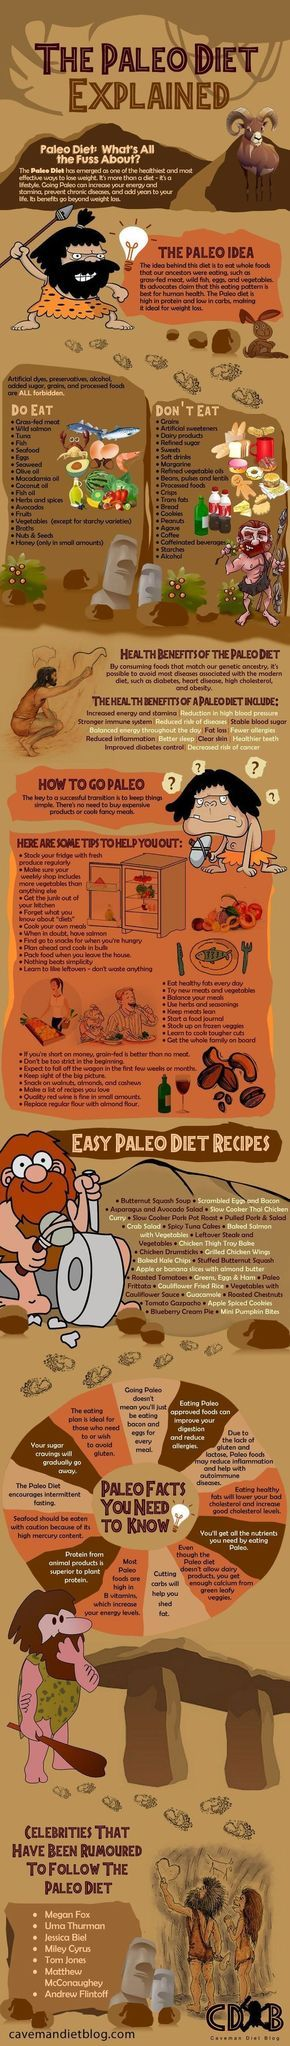 Paleo Diet Plan For Weight Loss Food List